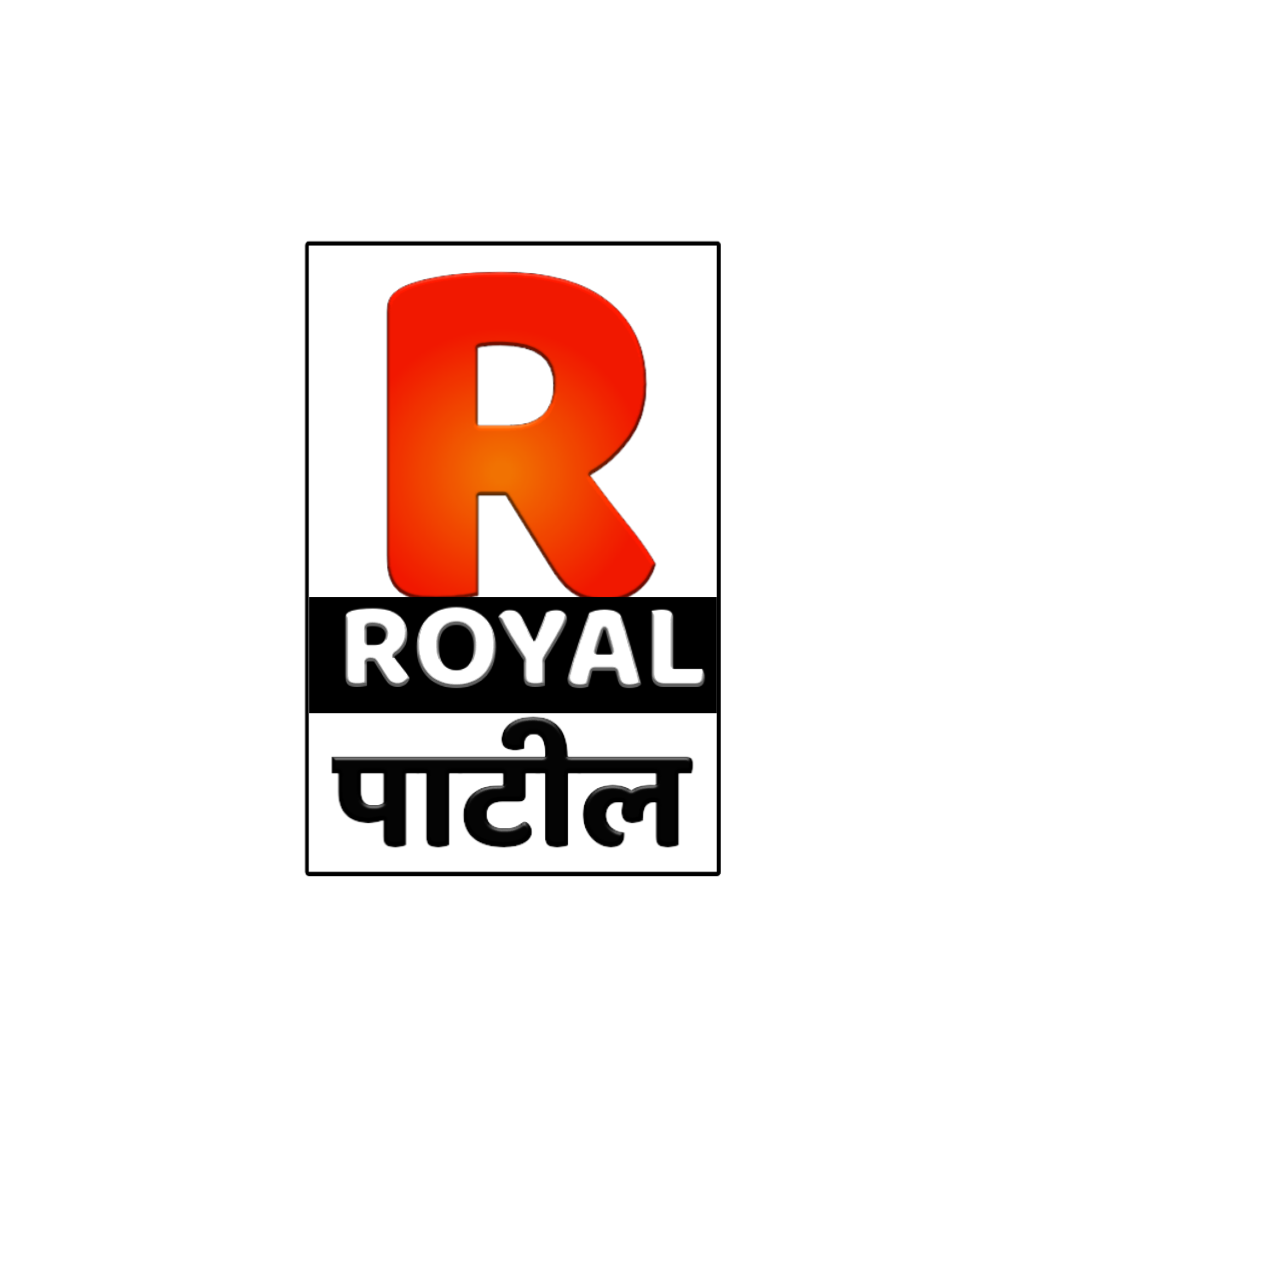 Royal patil